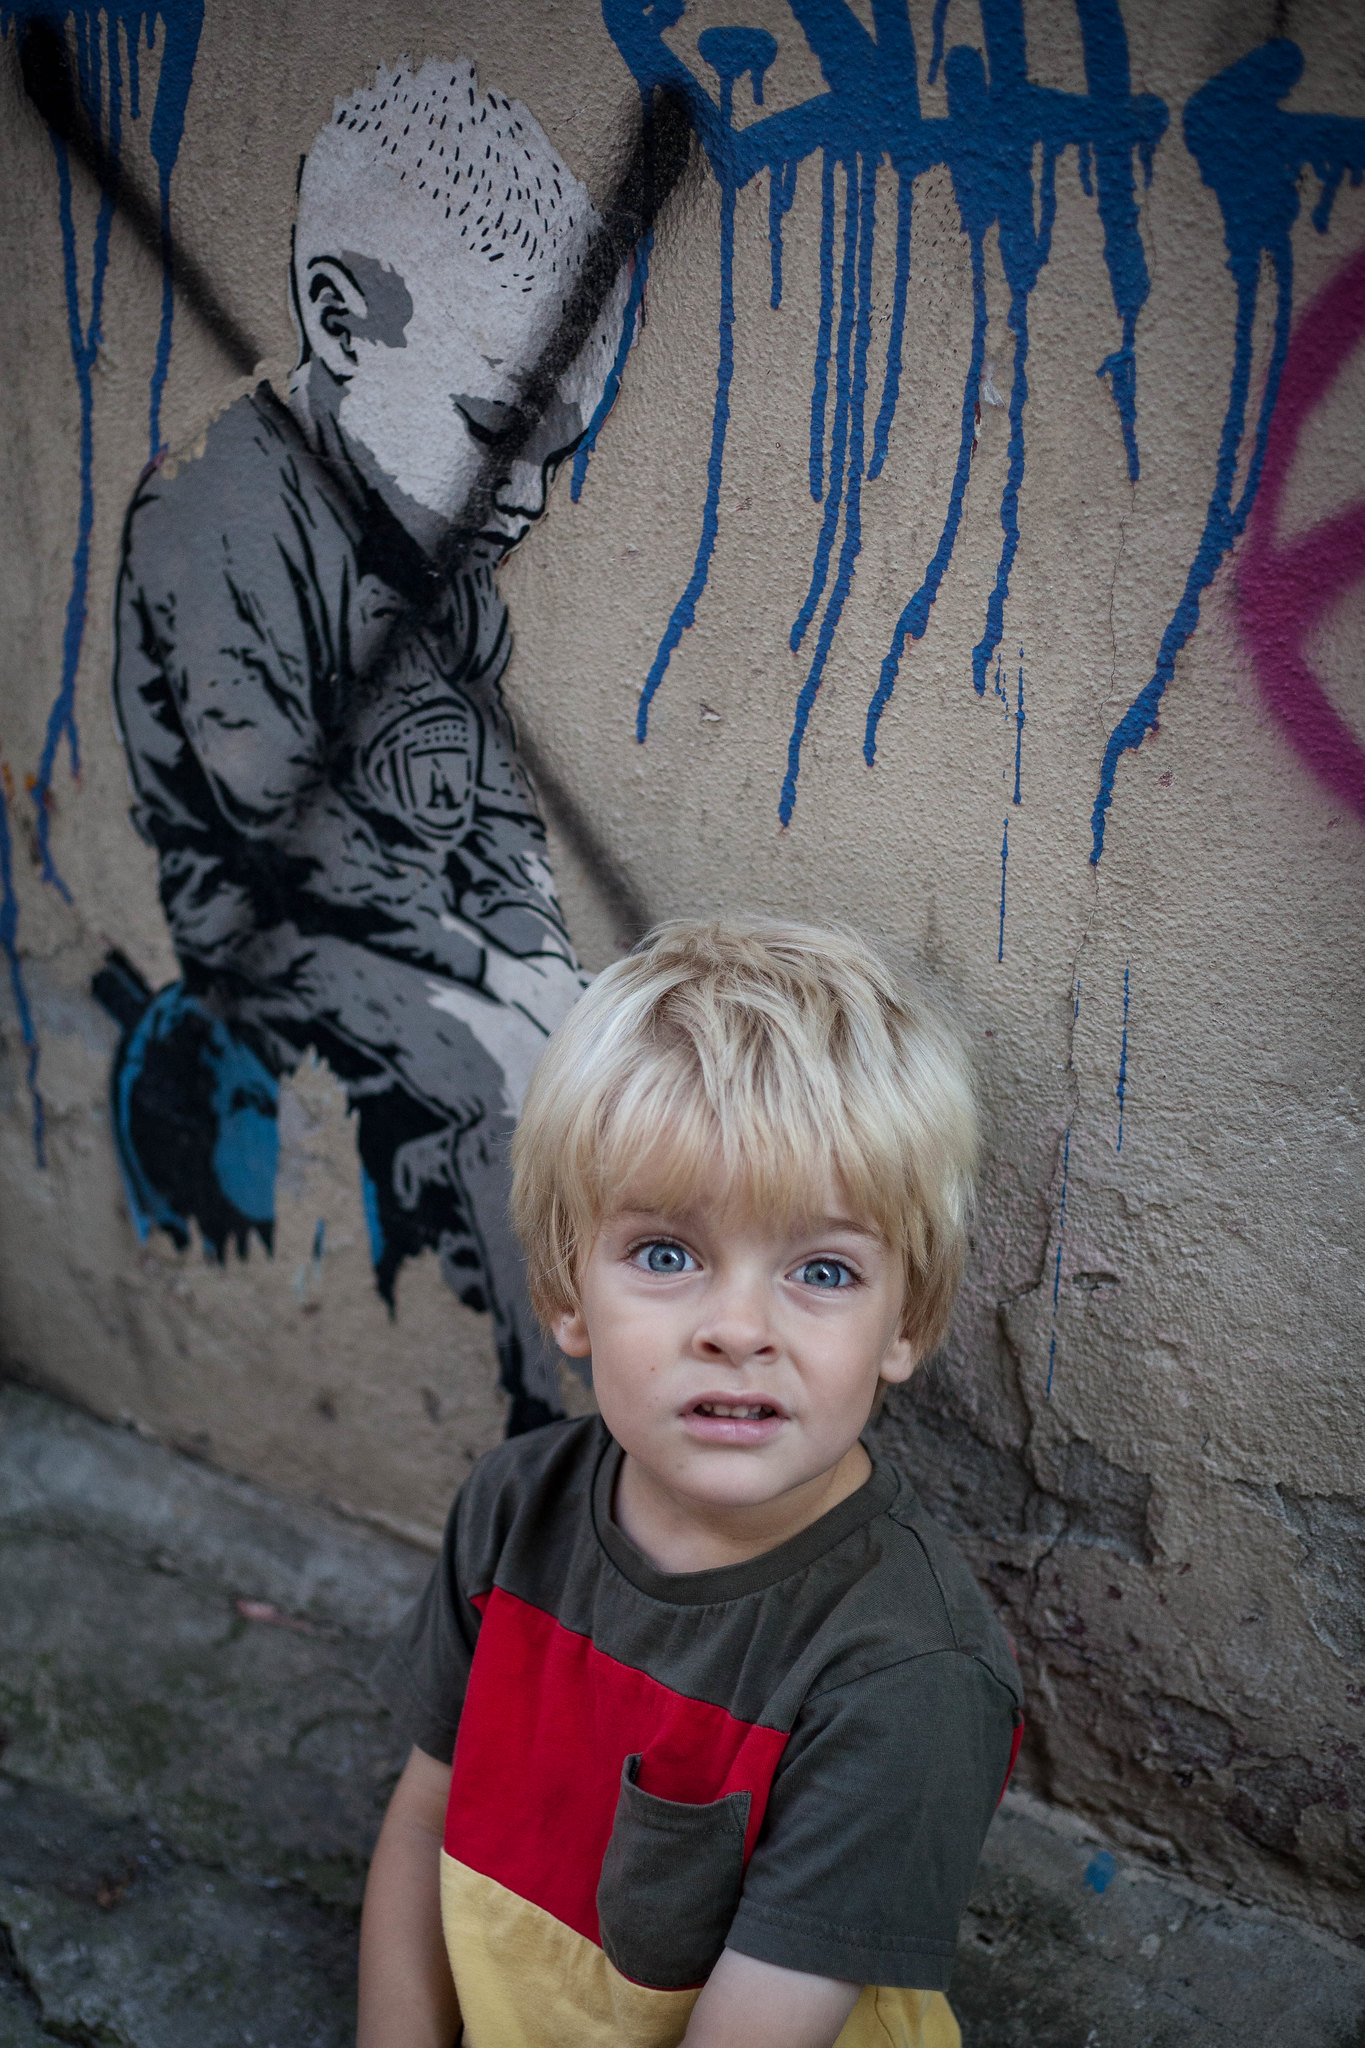 Graffiti boy.